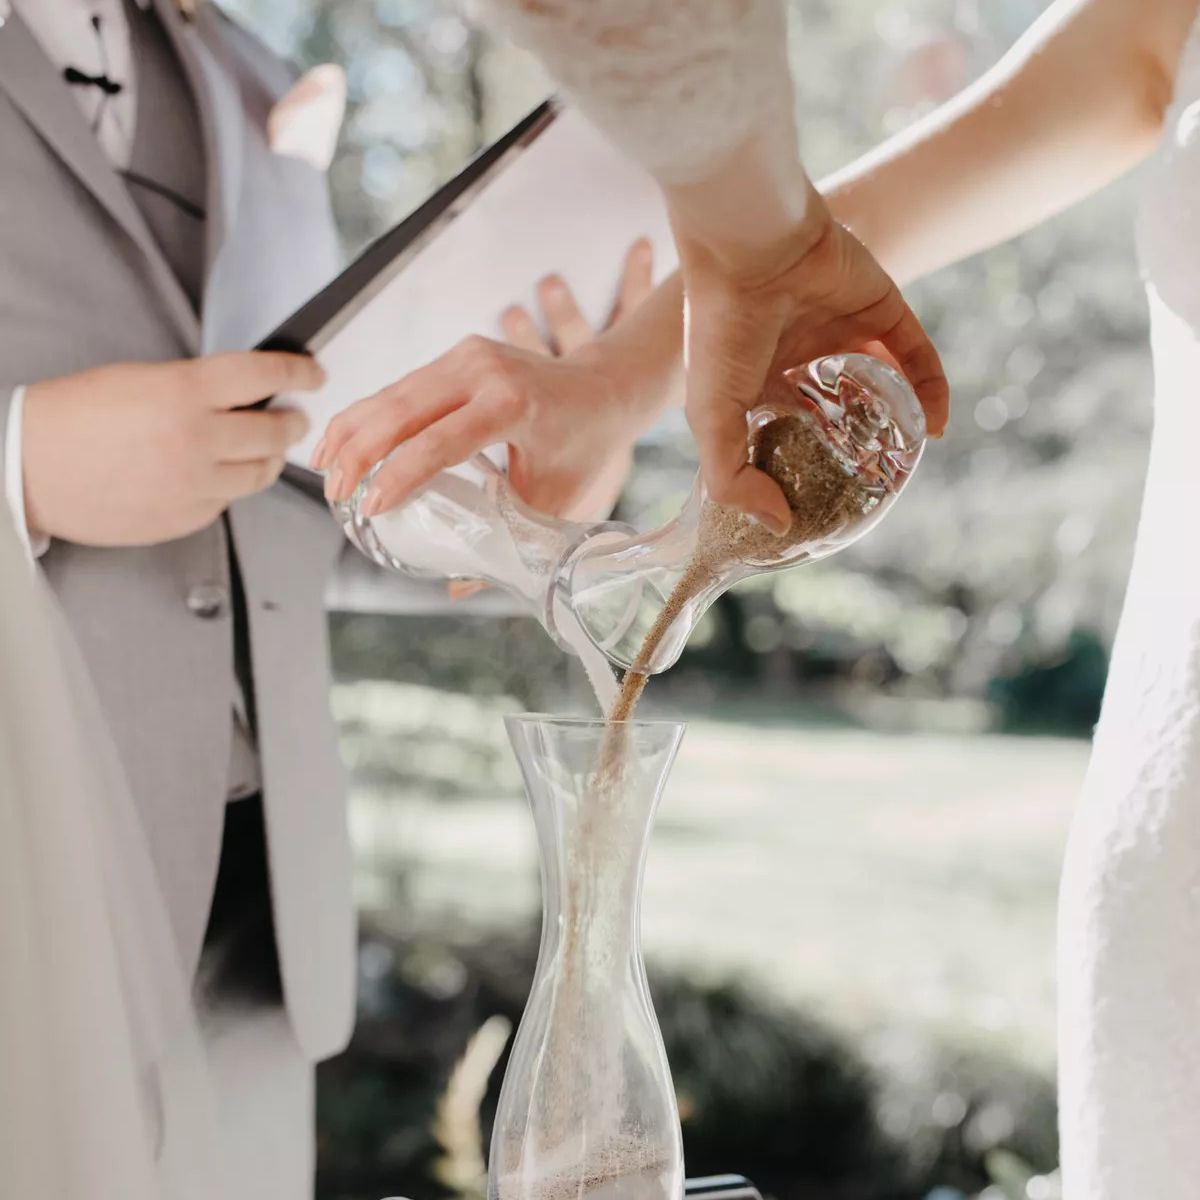 Bride and groom pouring sand into vessel